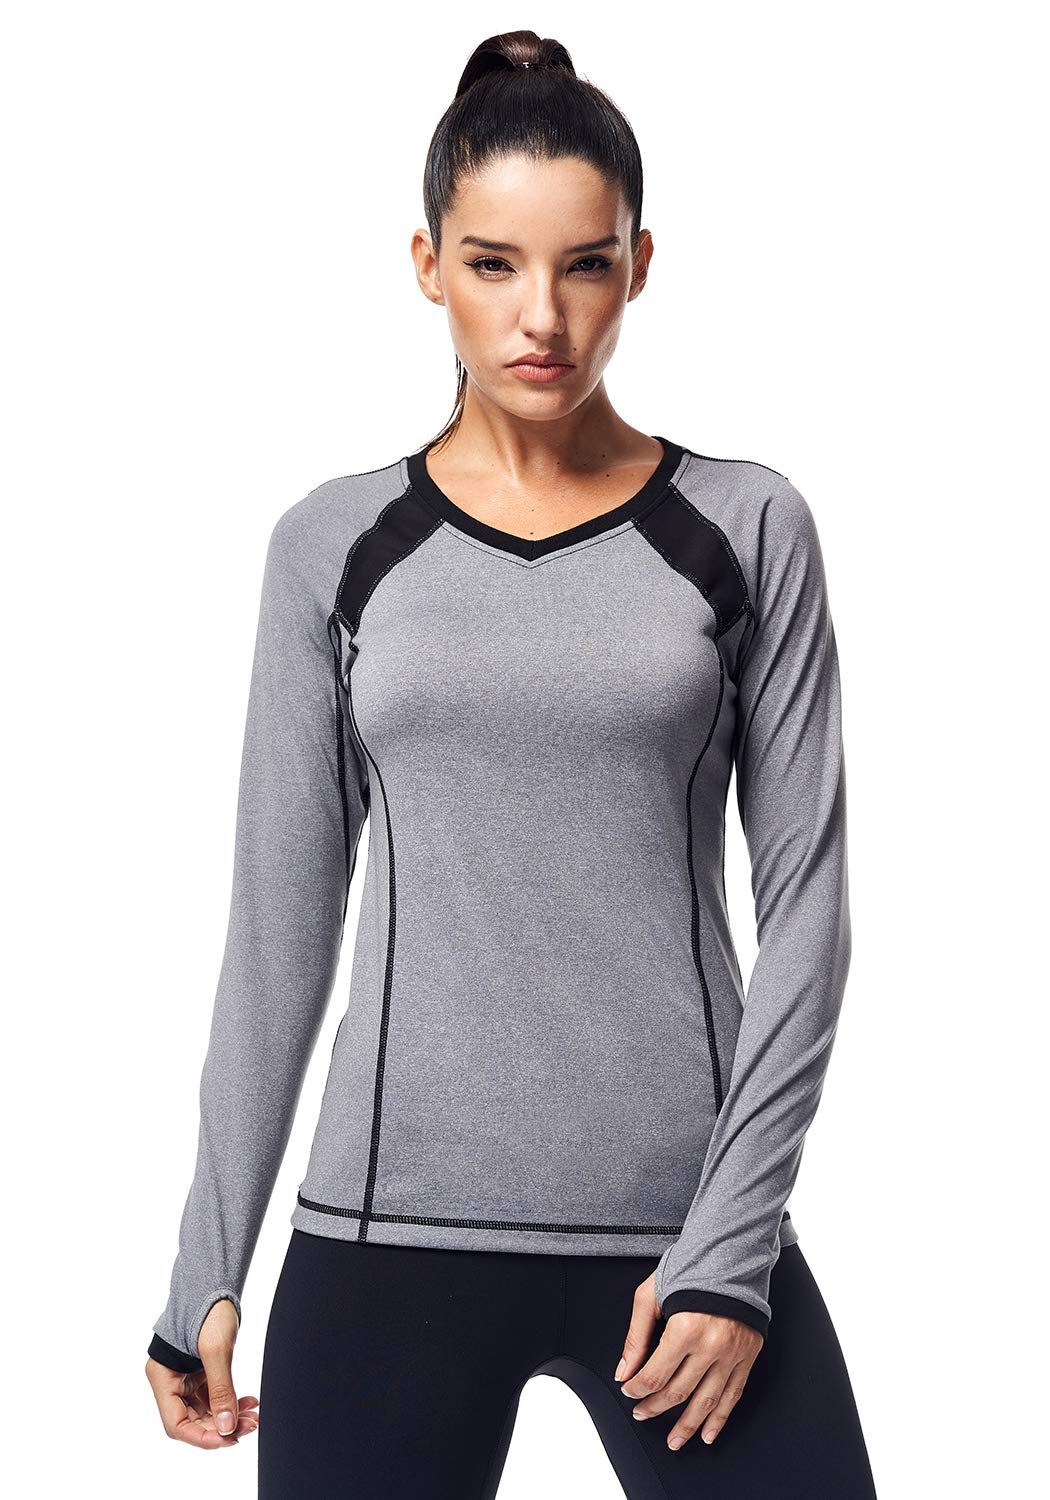 Matymats Women's Active Compression Tops Long Sleeve Workout T-Shirts with Thumb Holes